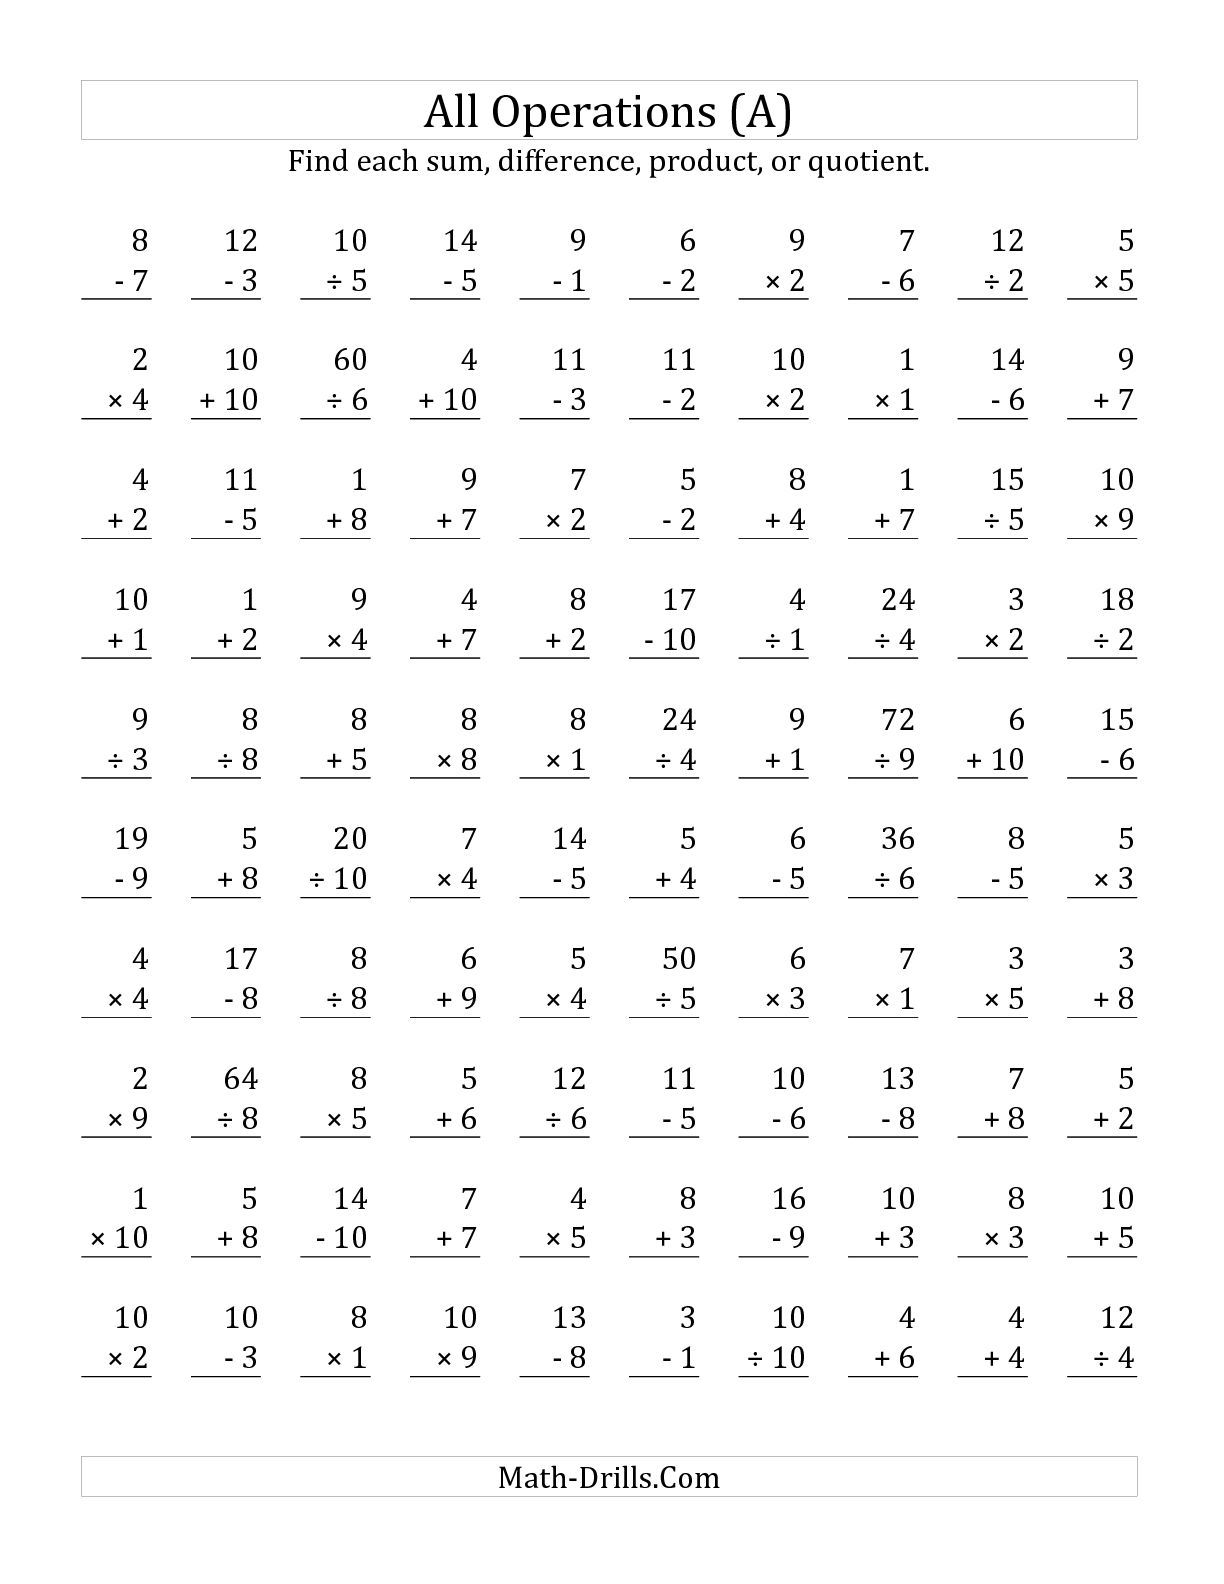 Worksheets Mixed Math Worksheets the all operations with facts from 1 to 10 a math worksheet the